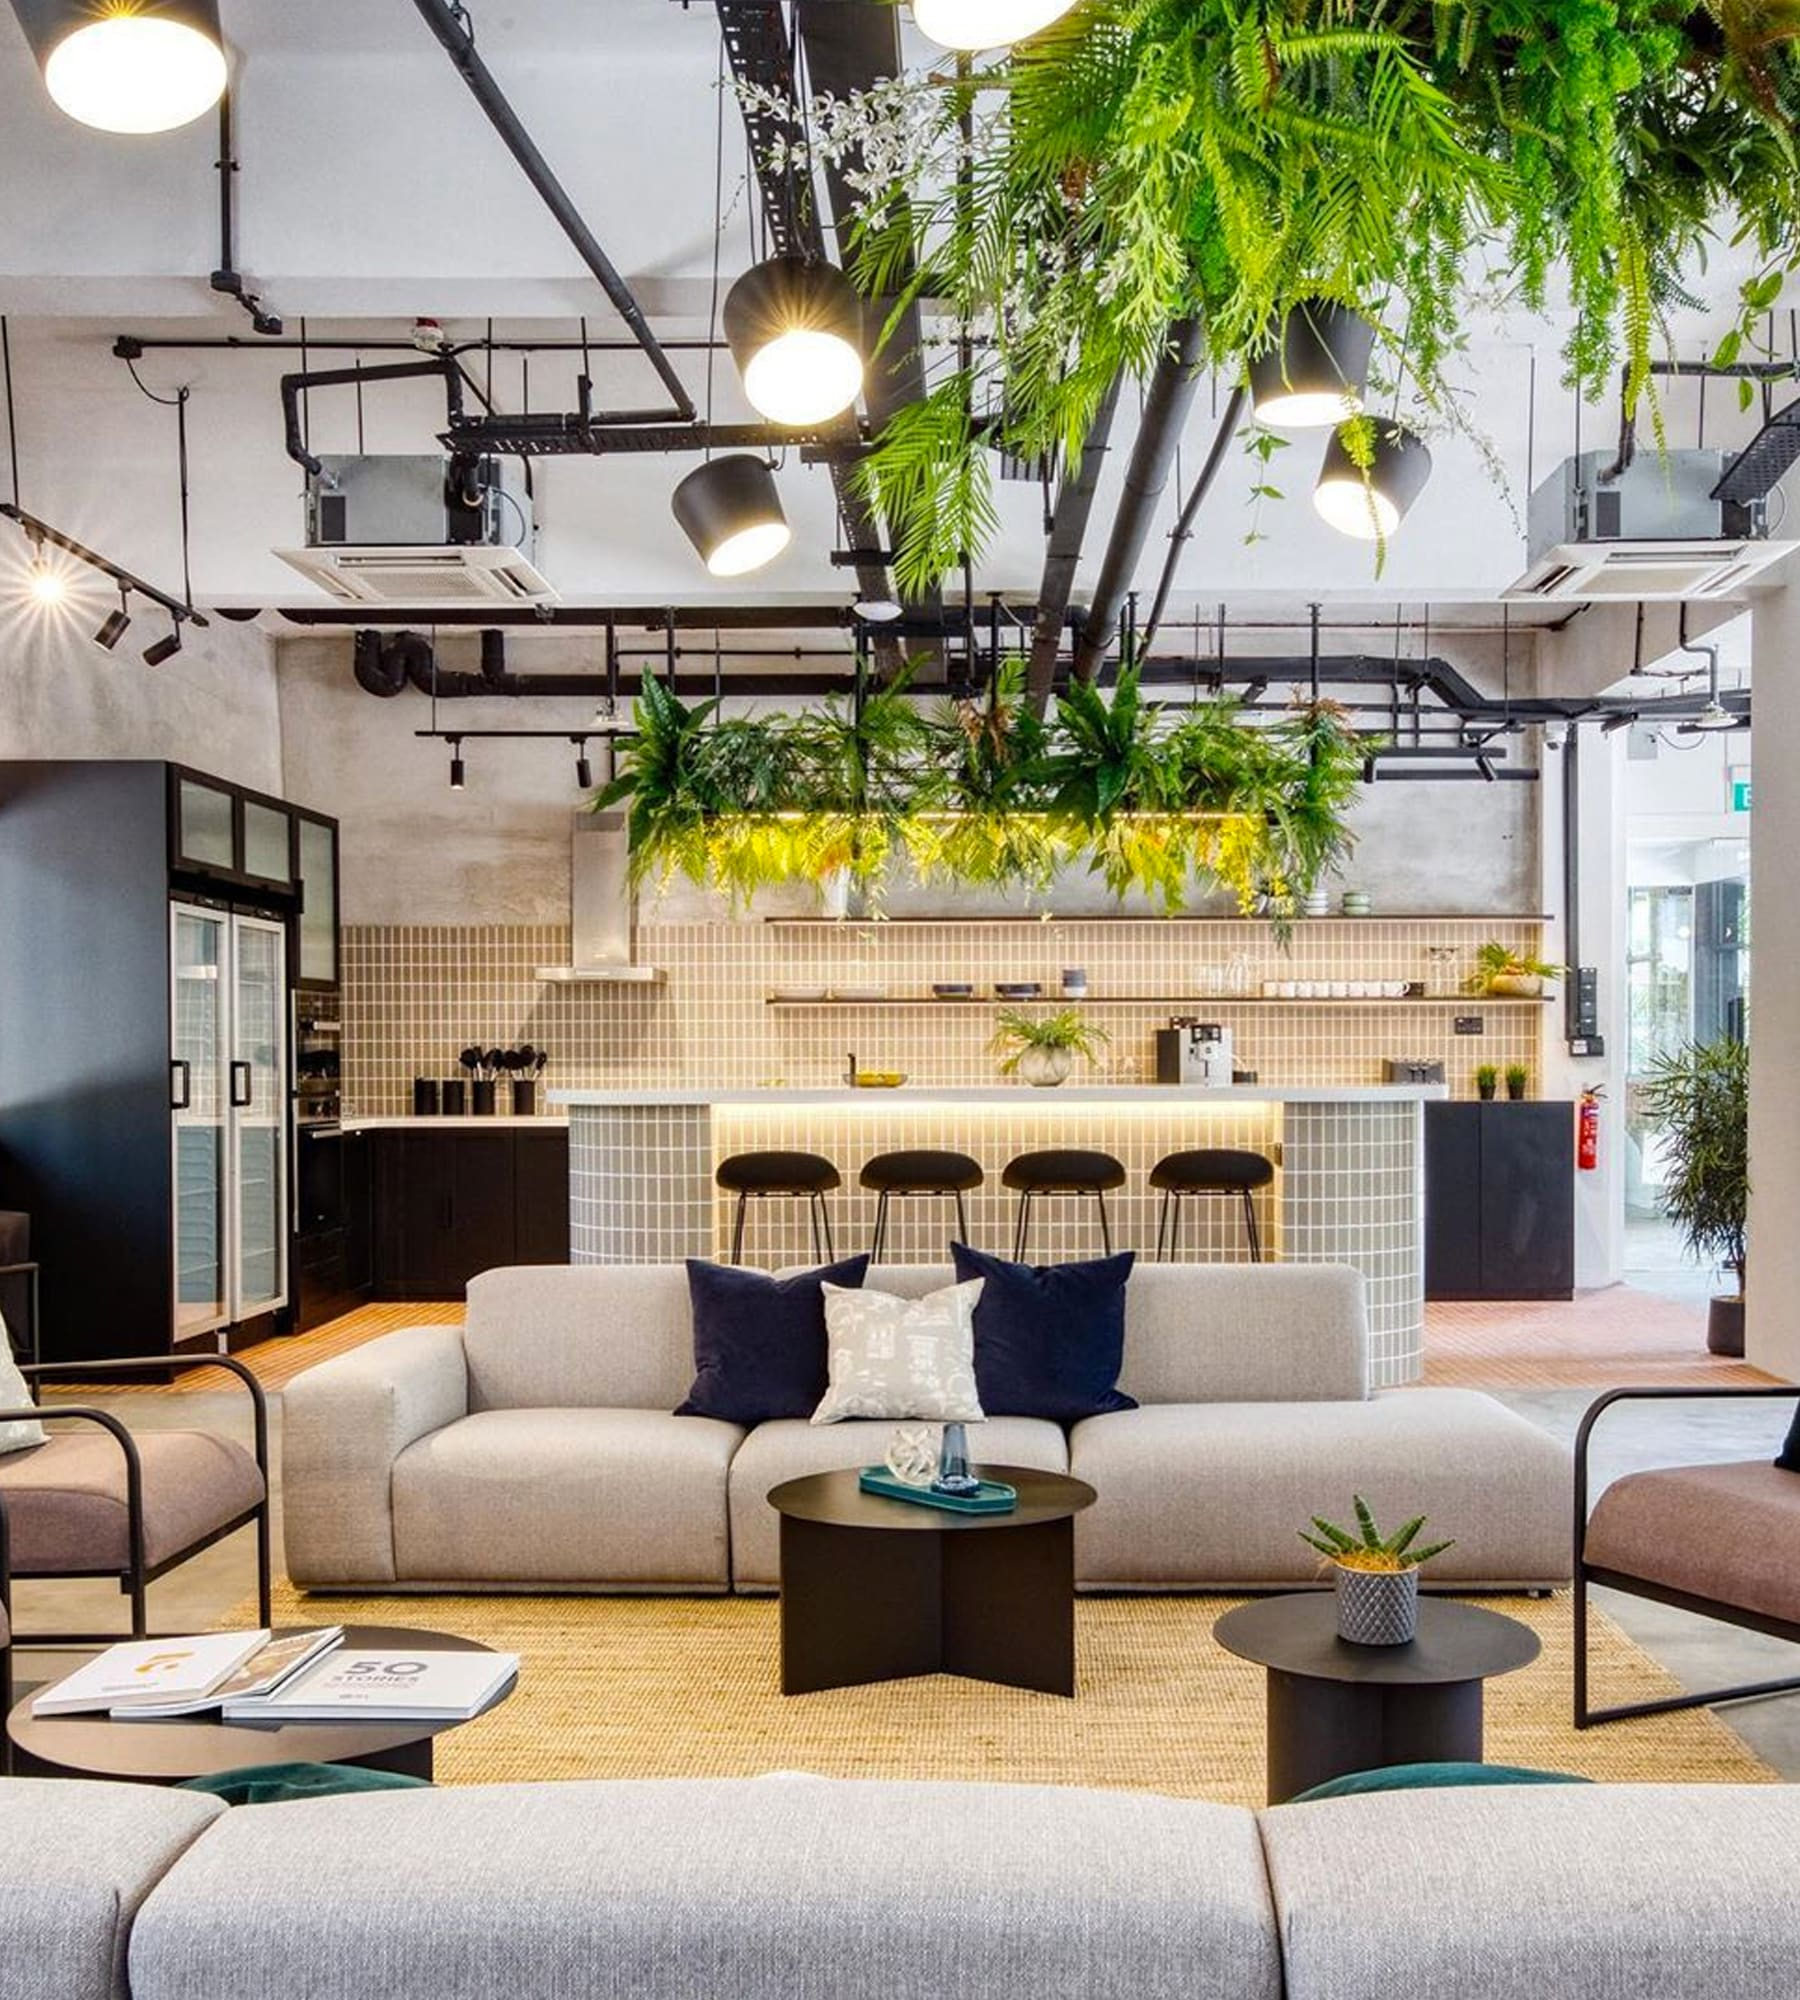 grey modular sofa in an industrial living room with plants hanging from exposed pipes on the ceiling